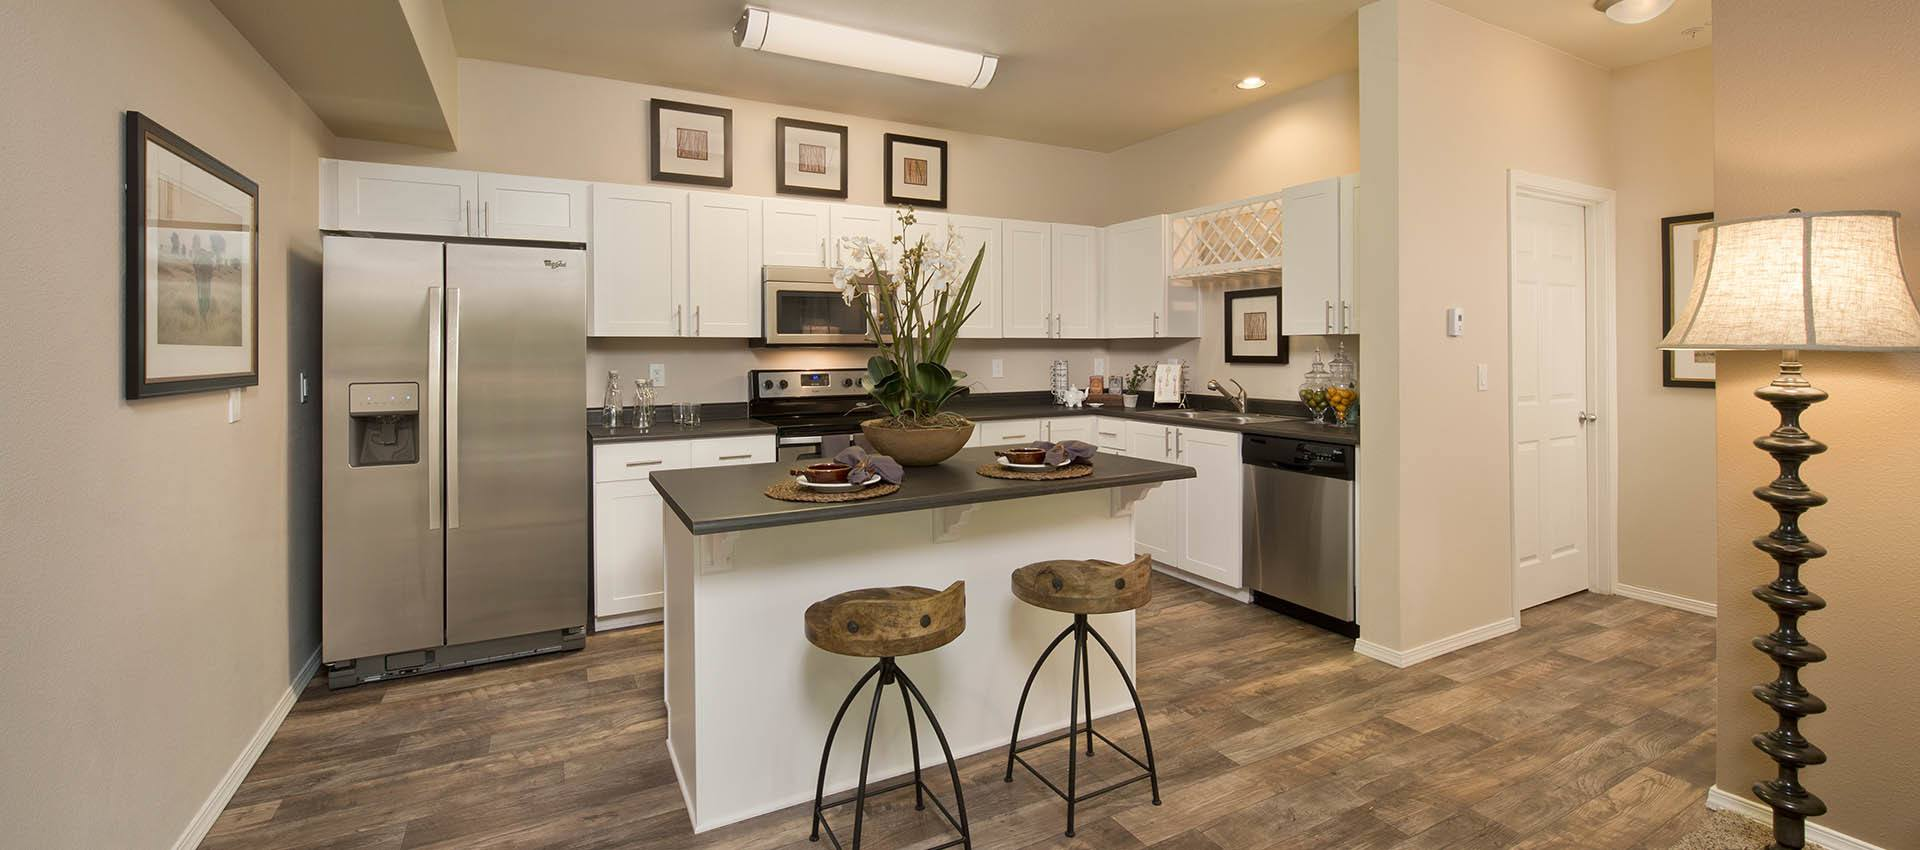 Upgraded Kitchen With Stainless Appliances at Altamont Summit in Happy Valley, OR